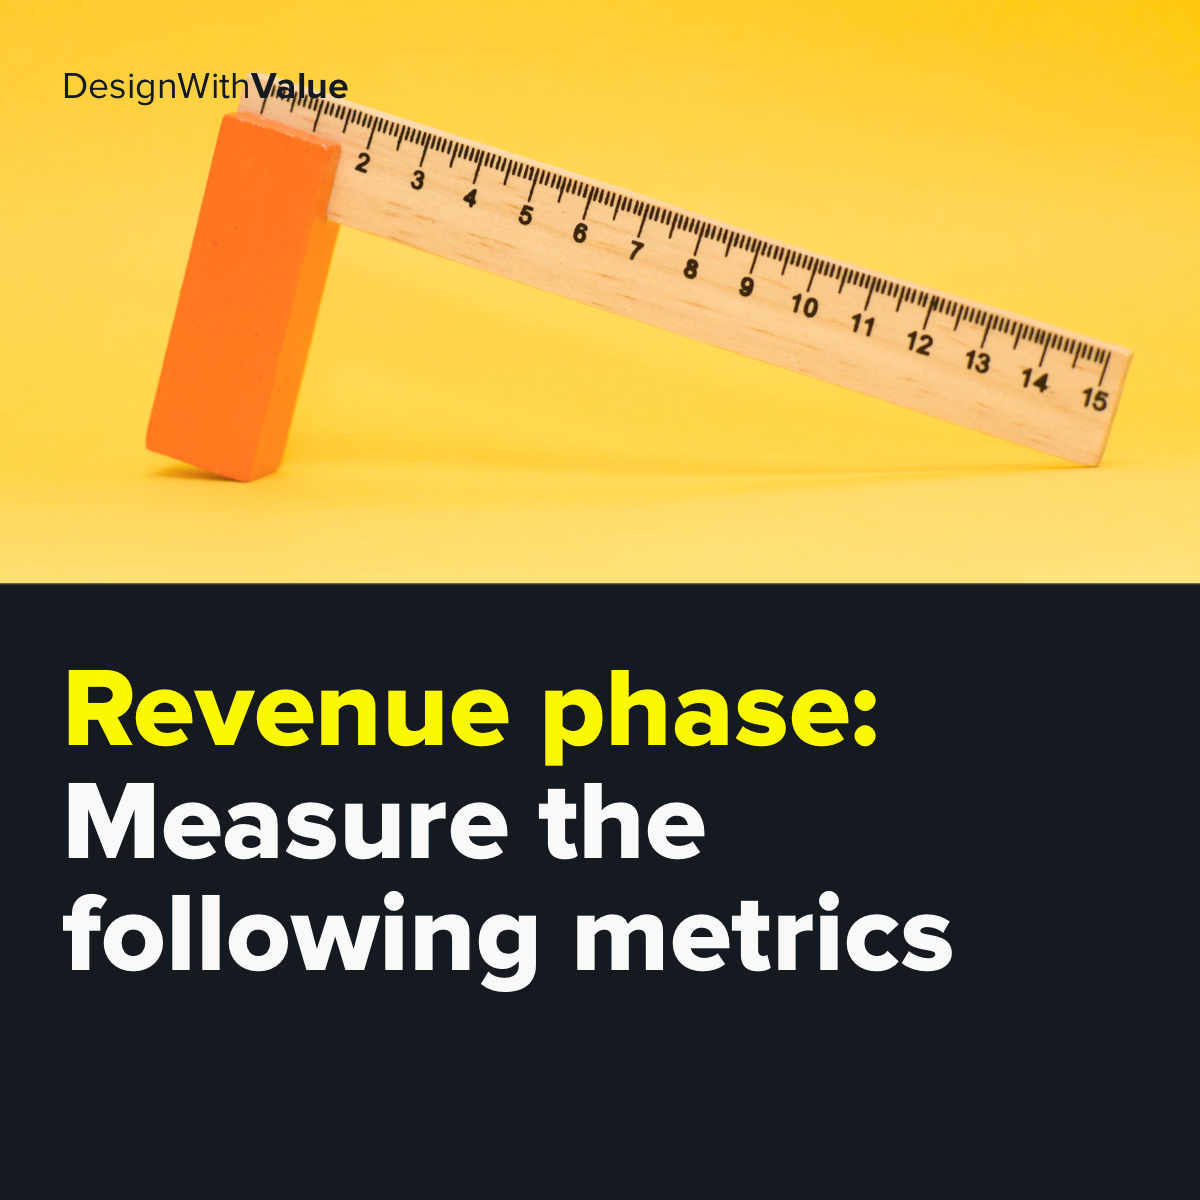 Measure the following metrics in the revenue phase.